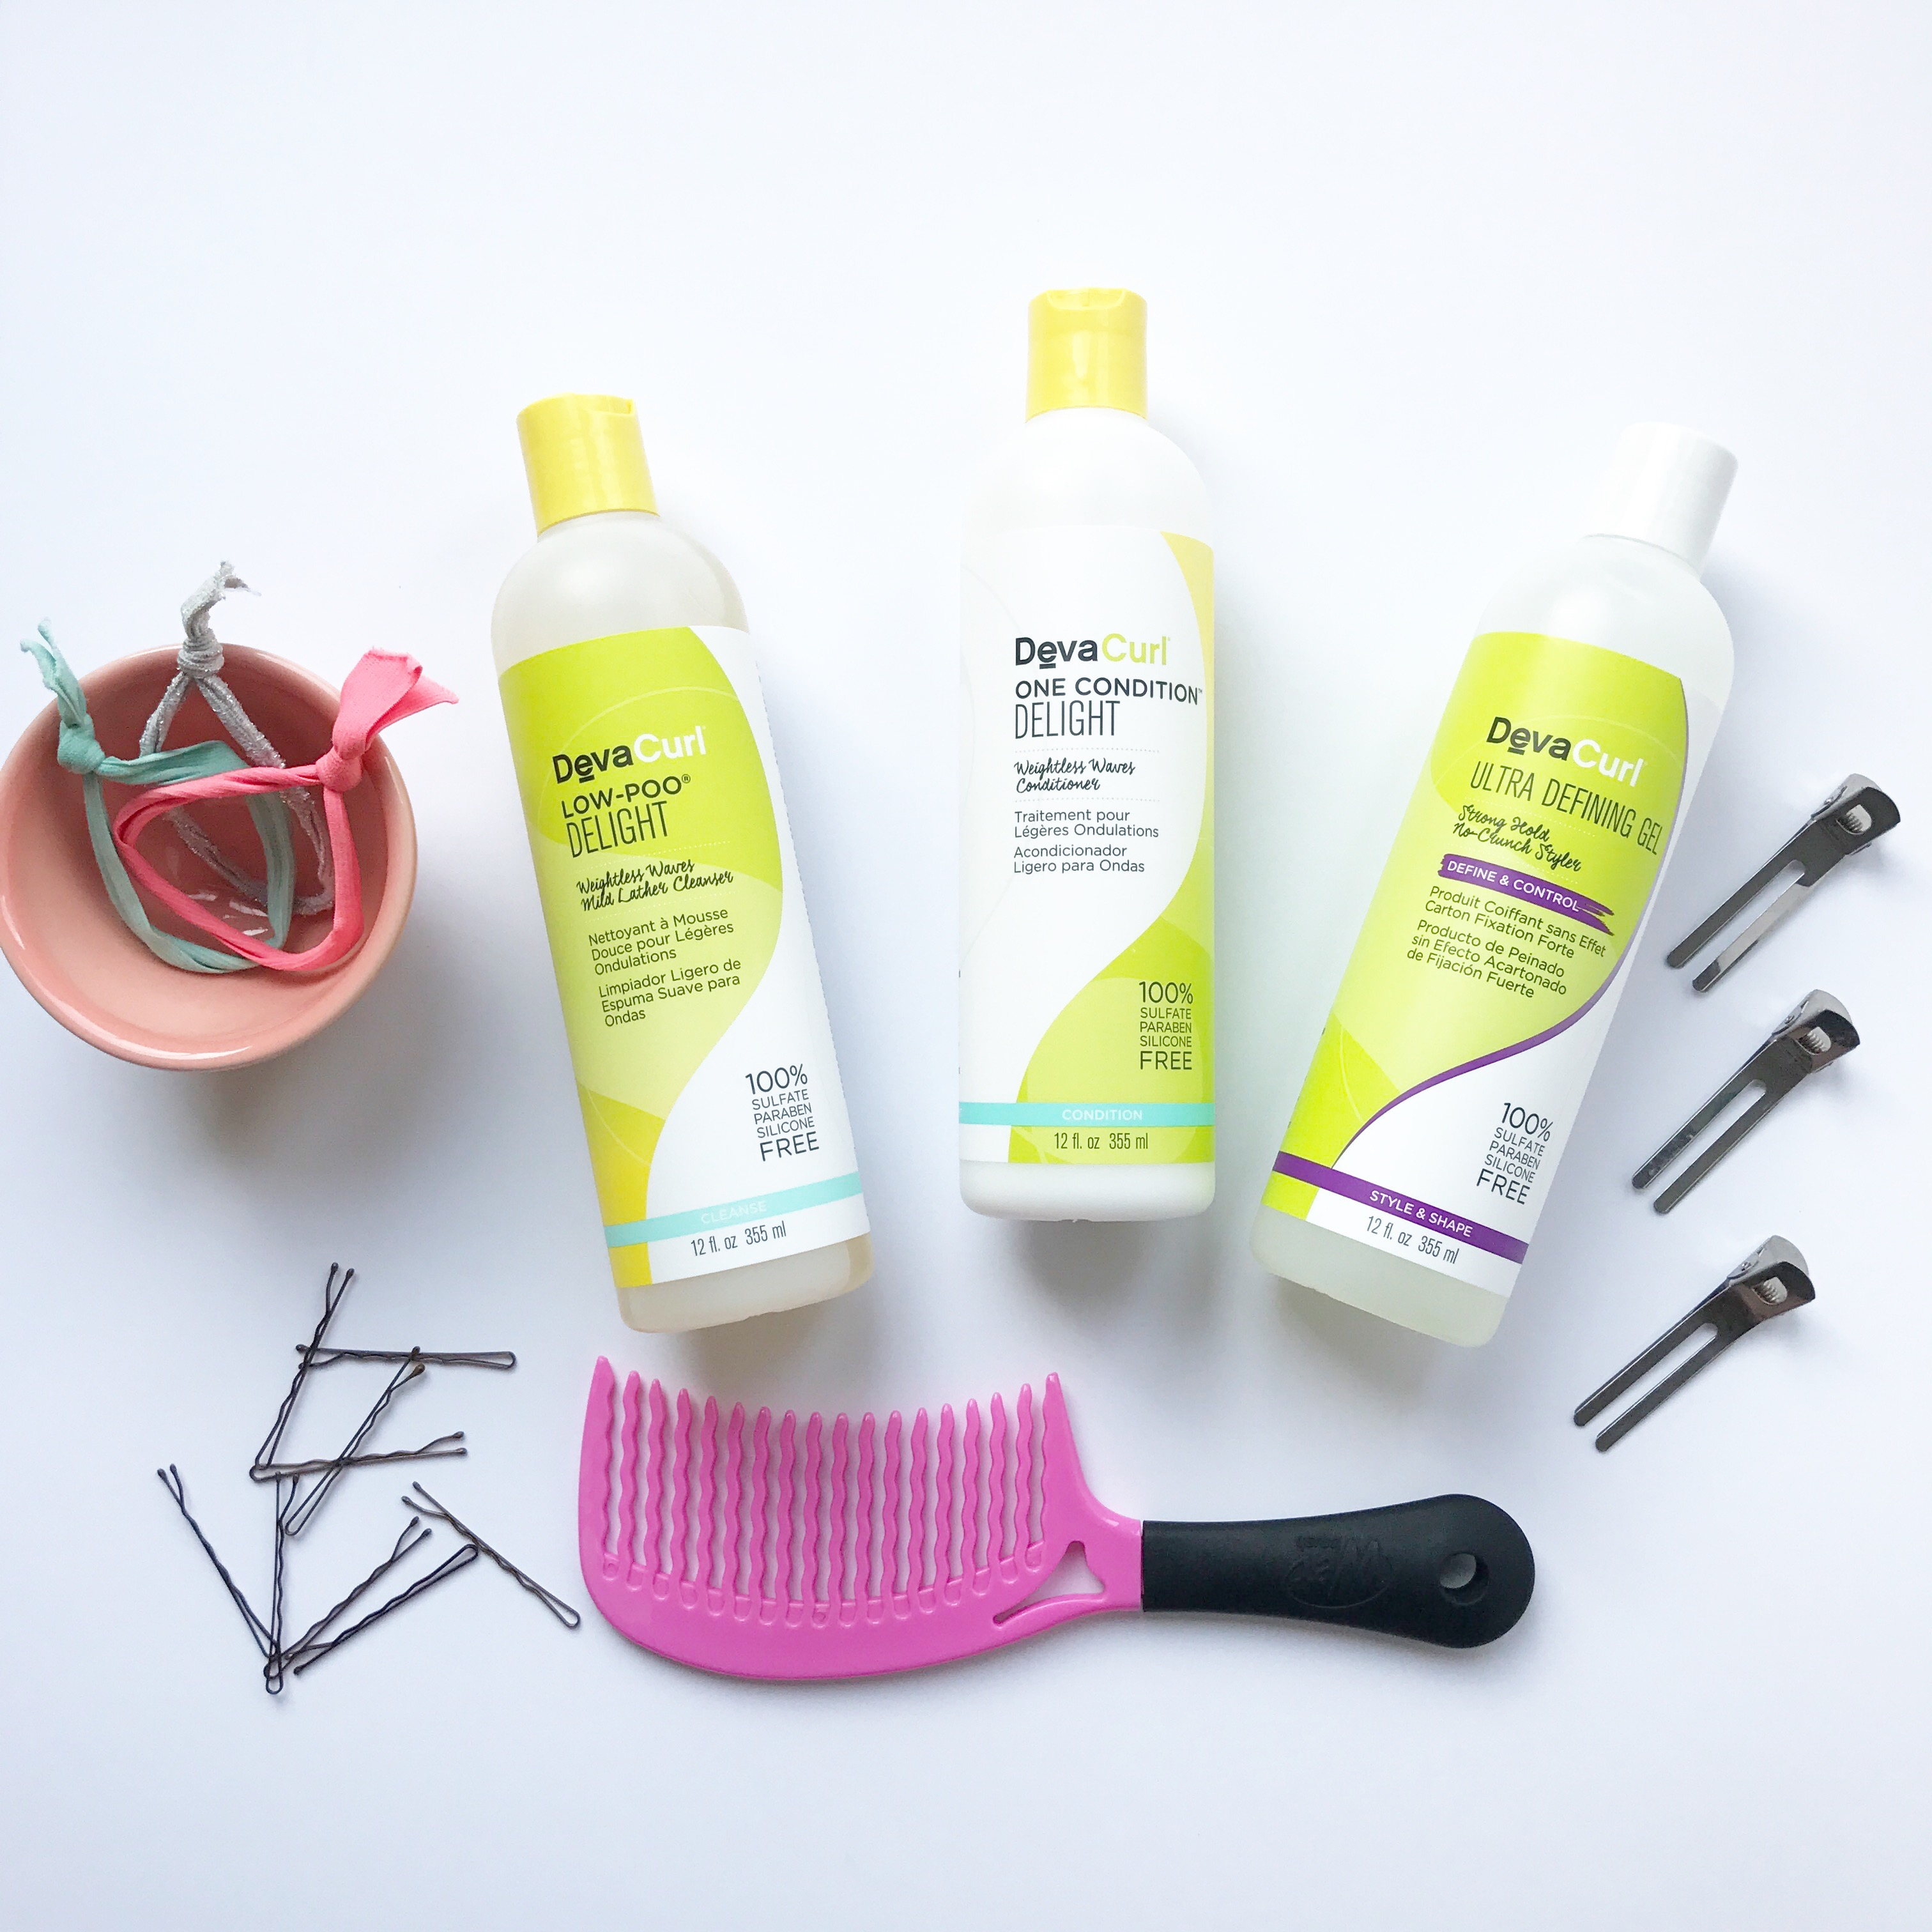 Blogger Carly Totten shares why she loves DevaCurl! | www.carlyisinspired.com